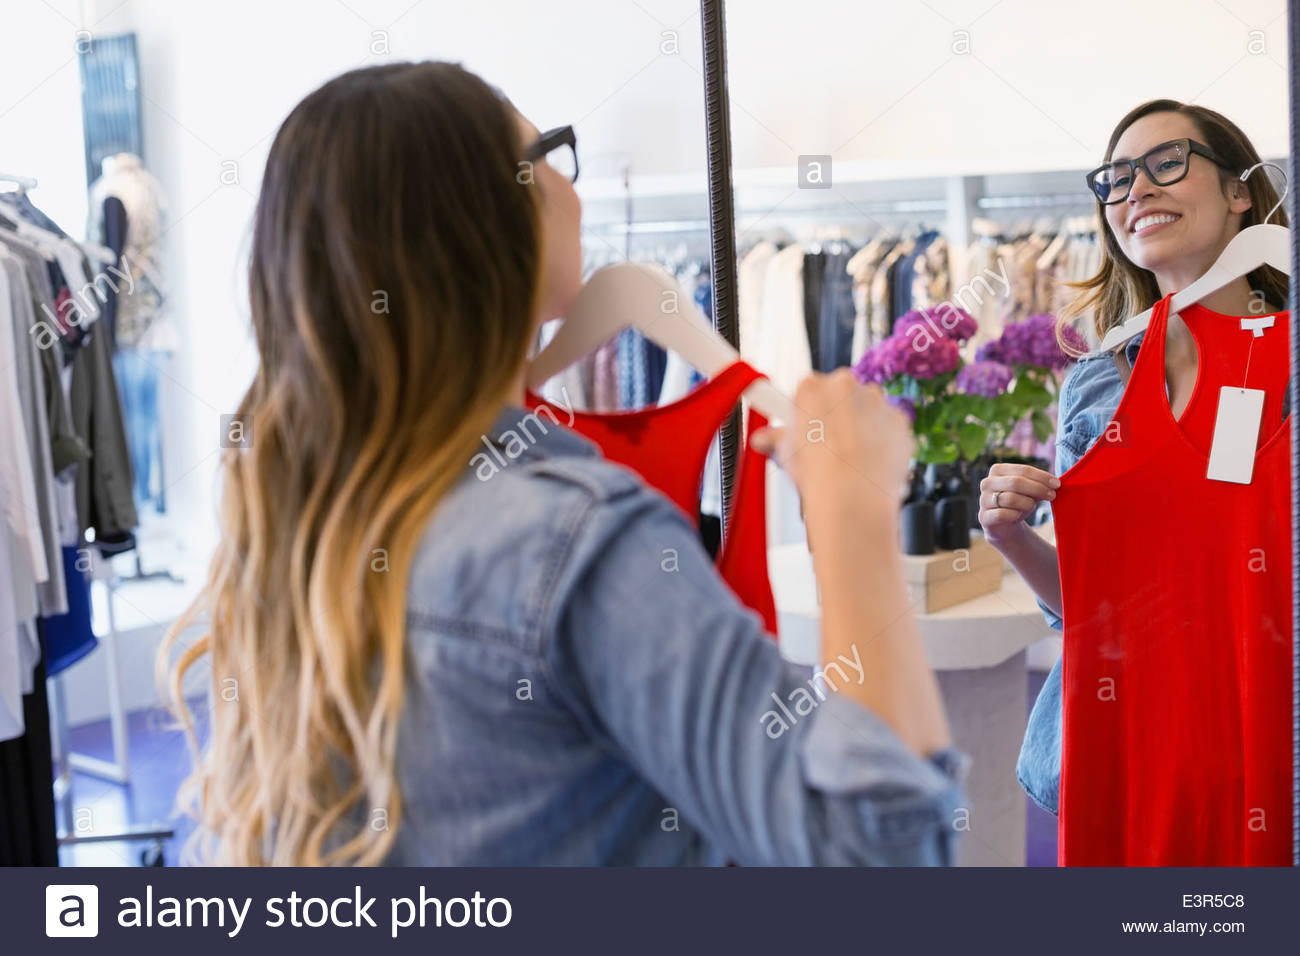 Woman holding tank-top in clothing store - Stock Image